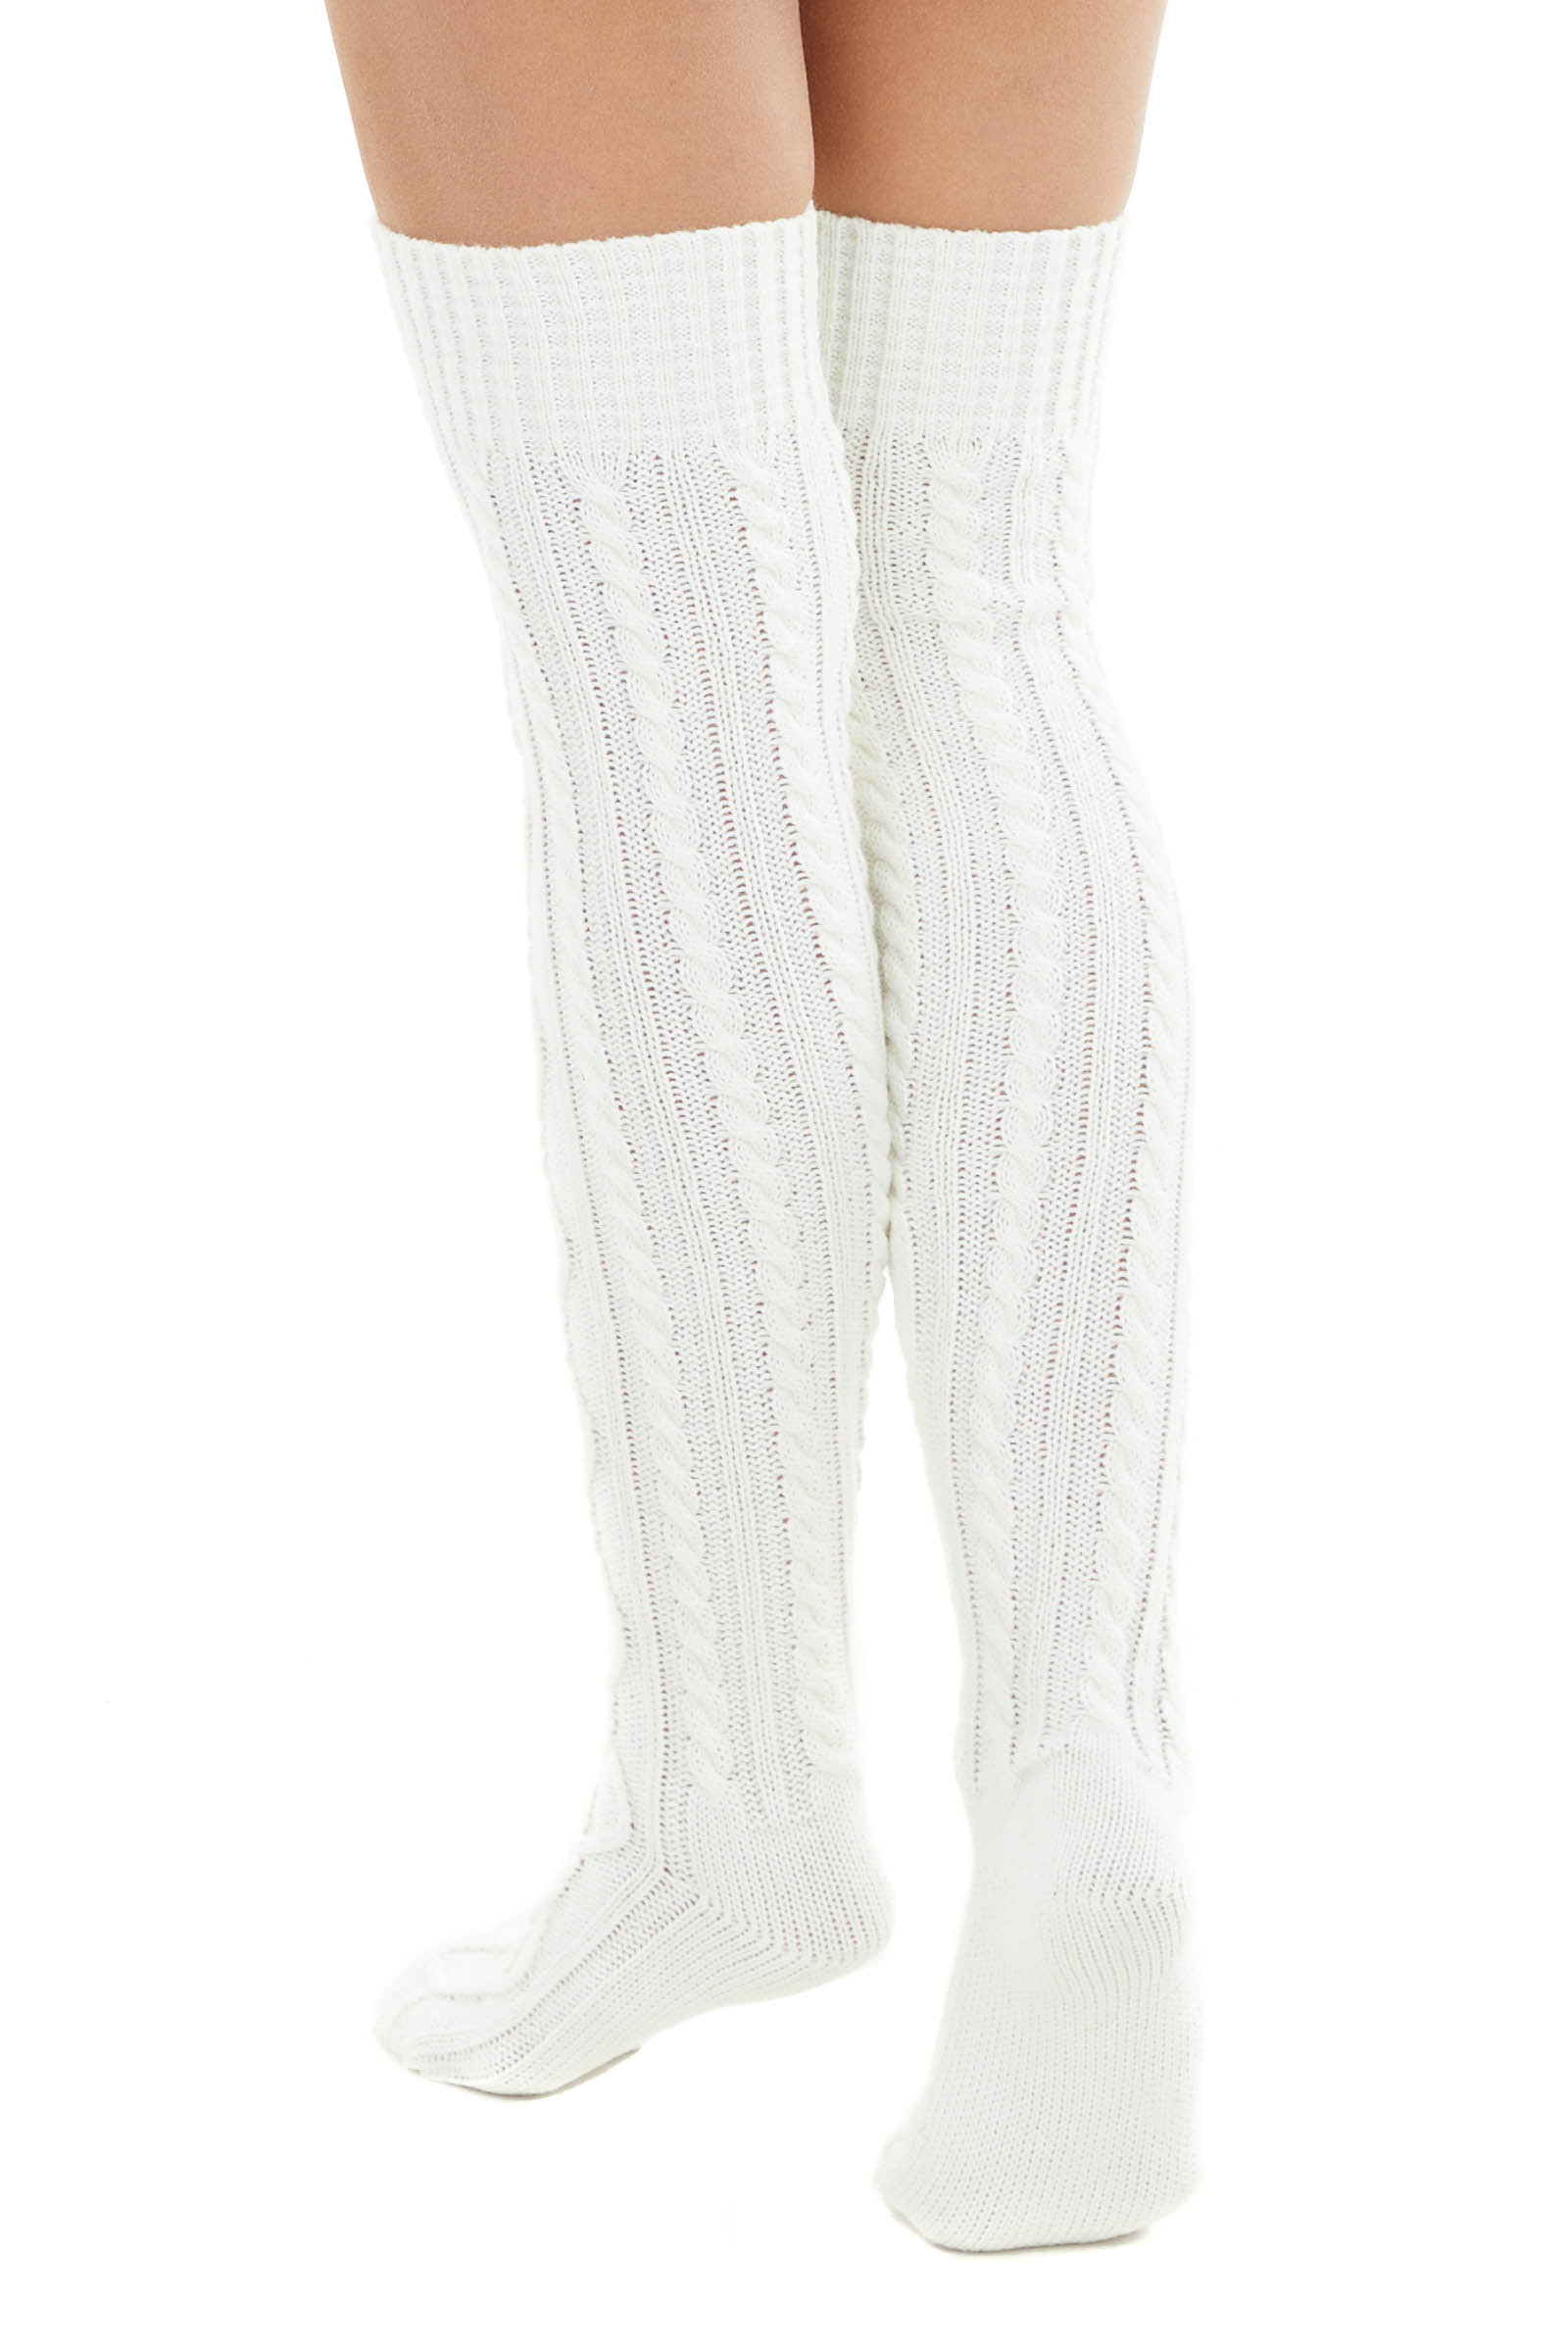 Ivory Cable Knit Over the Knee High Fashion Socks